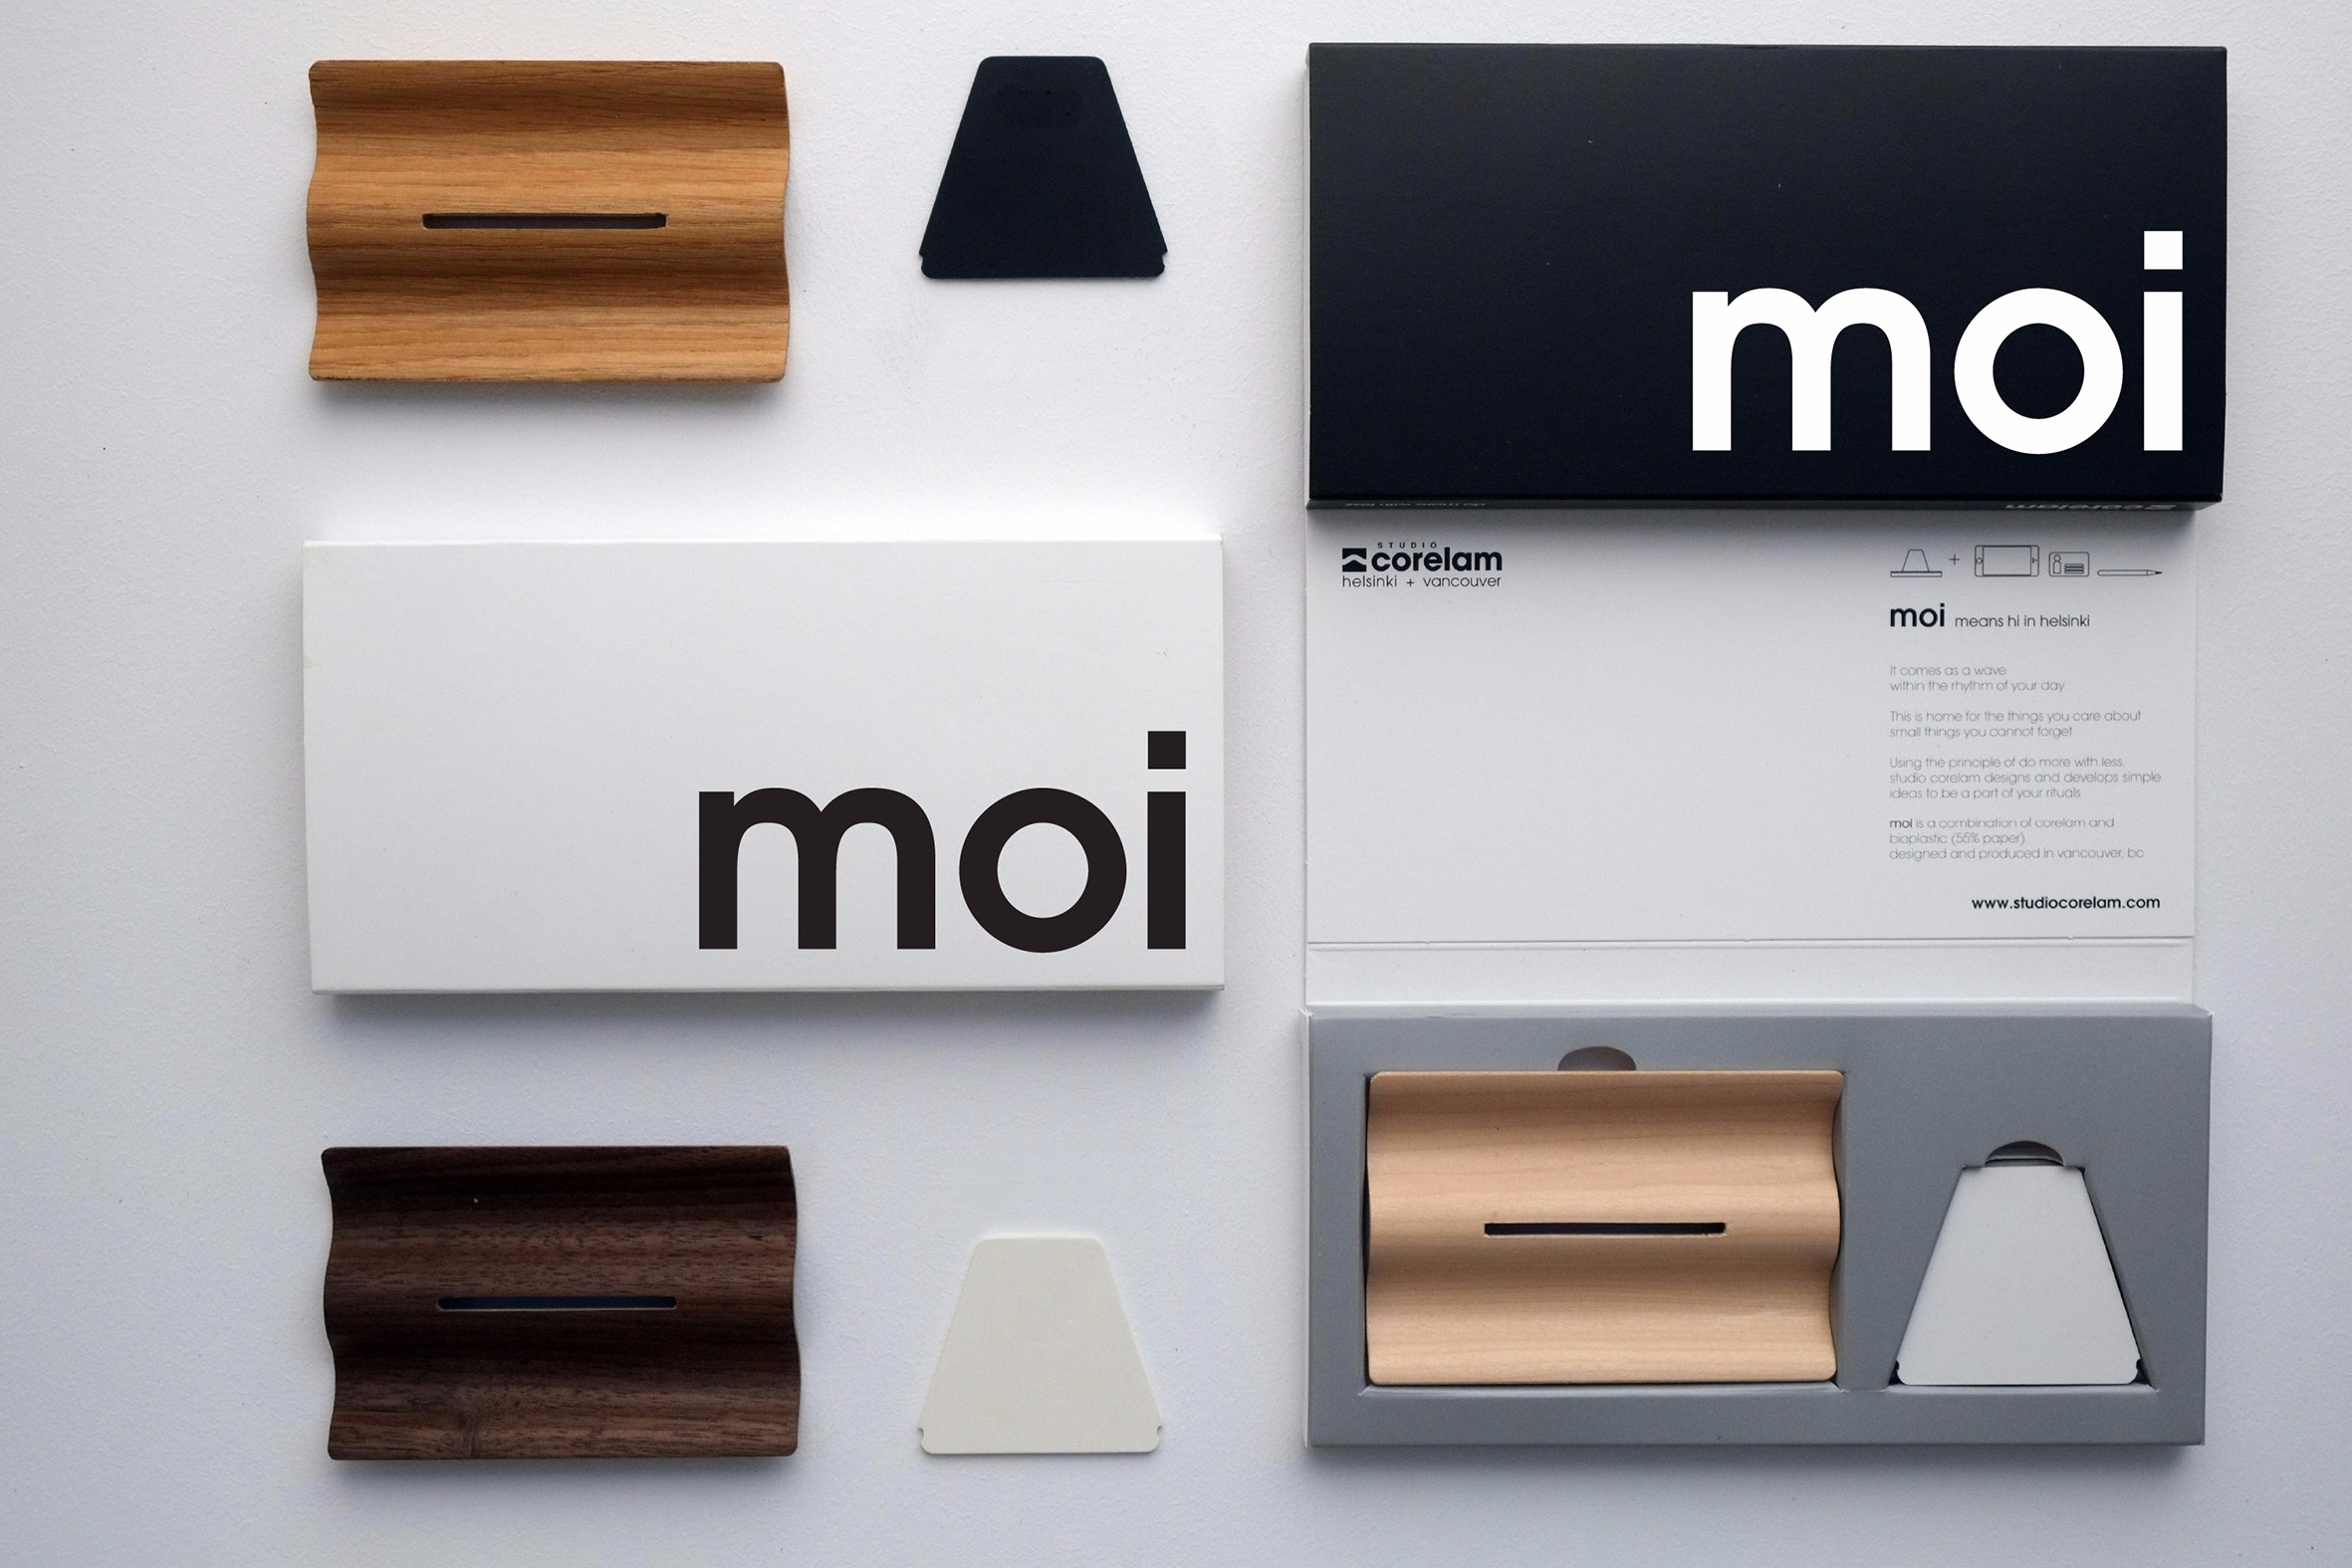 complete moi package. Give feed - studiocorelam | ello